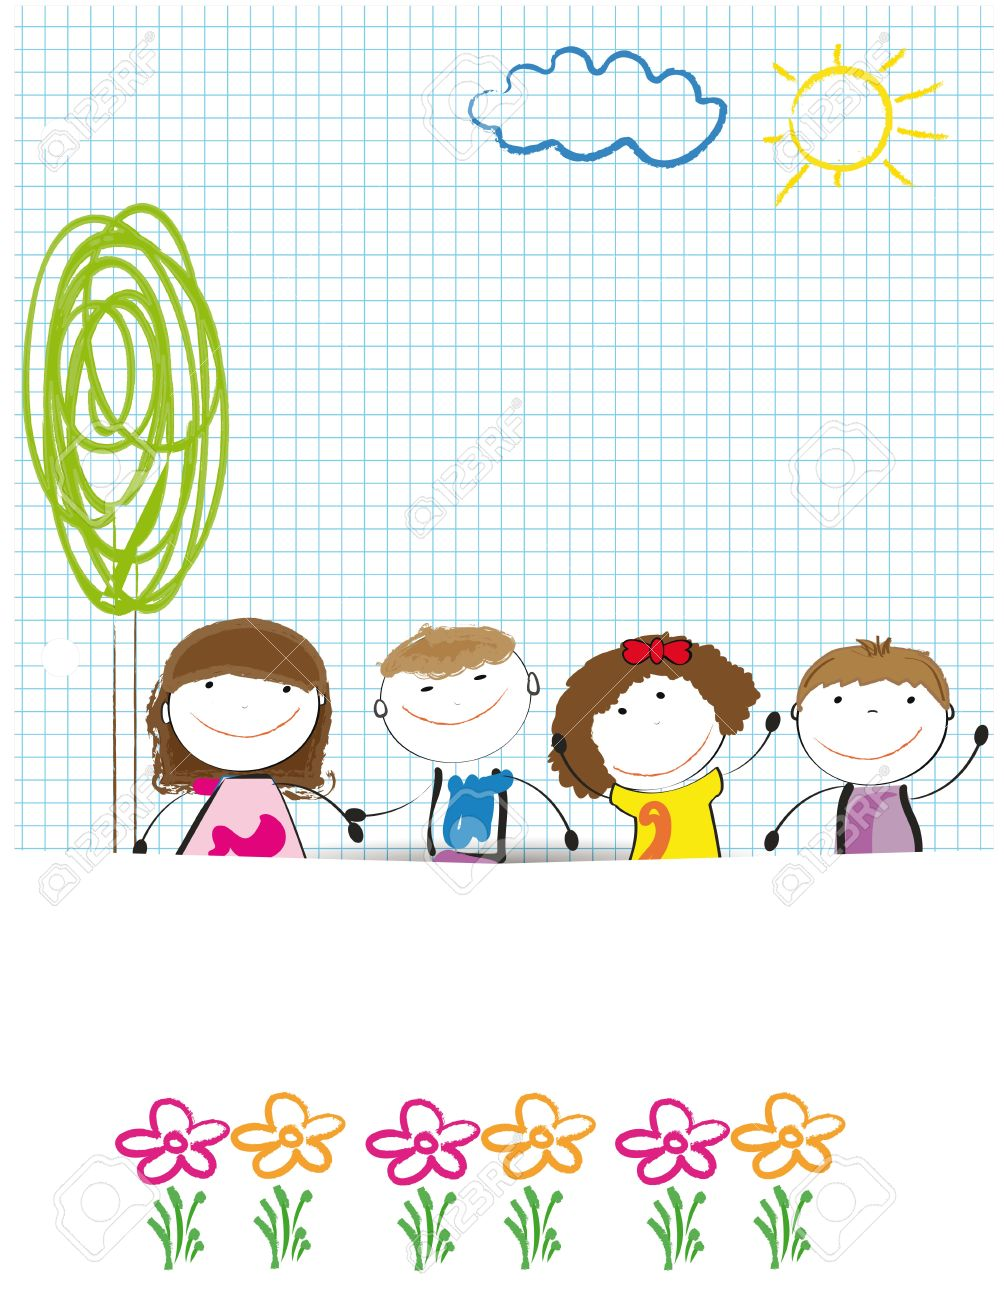 Colorful Kids Background Drwing On Sheet Of Paper Royalty Free ...